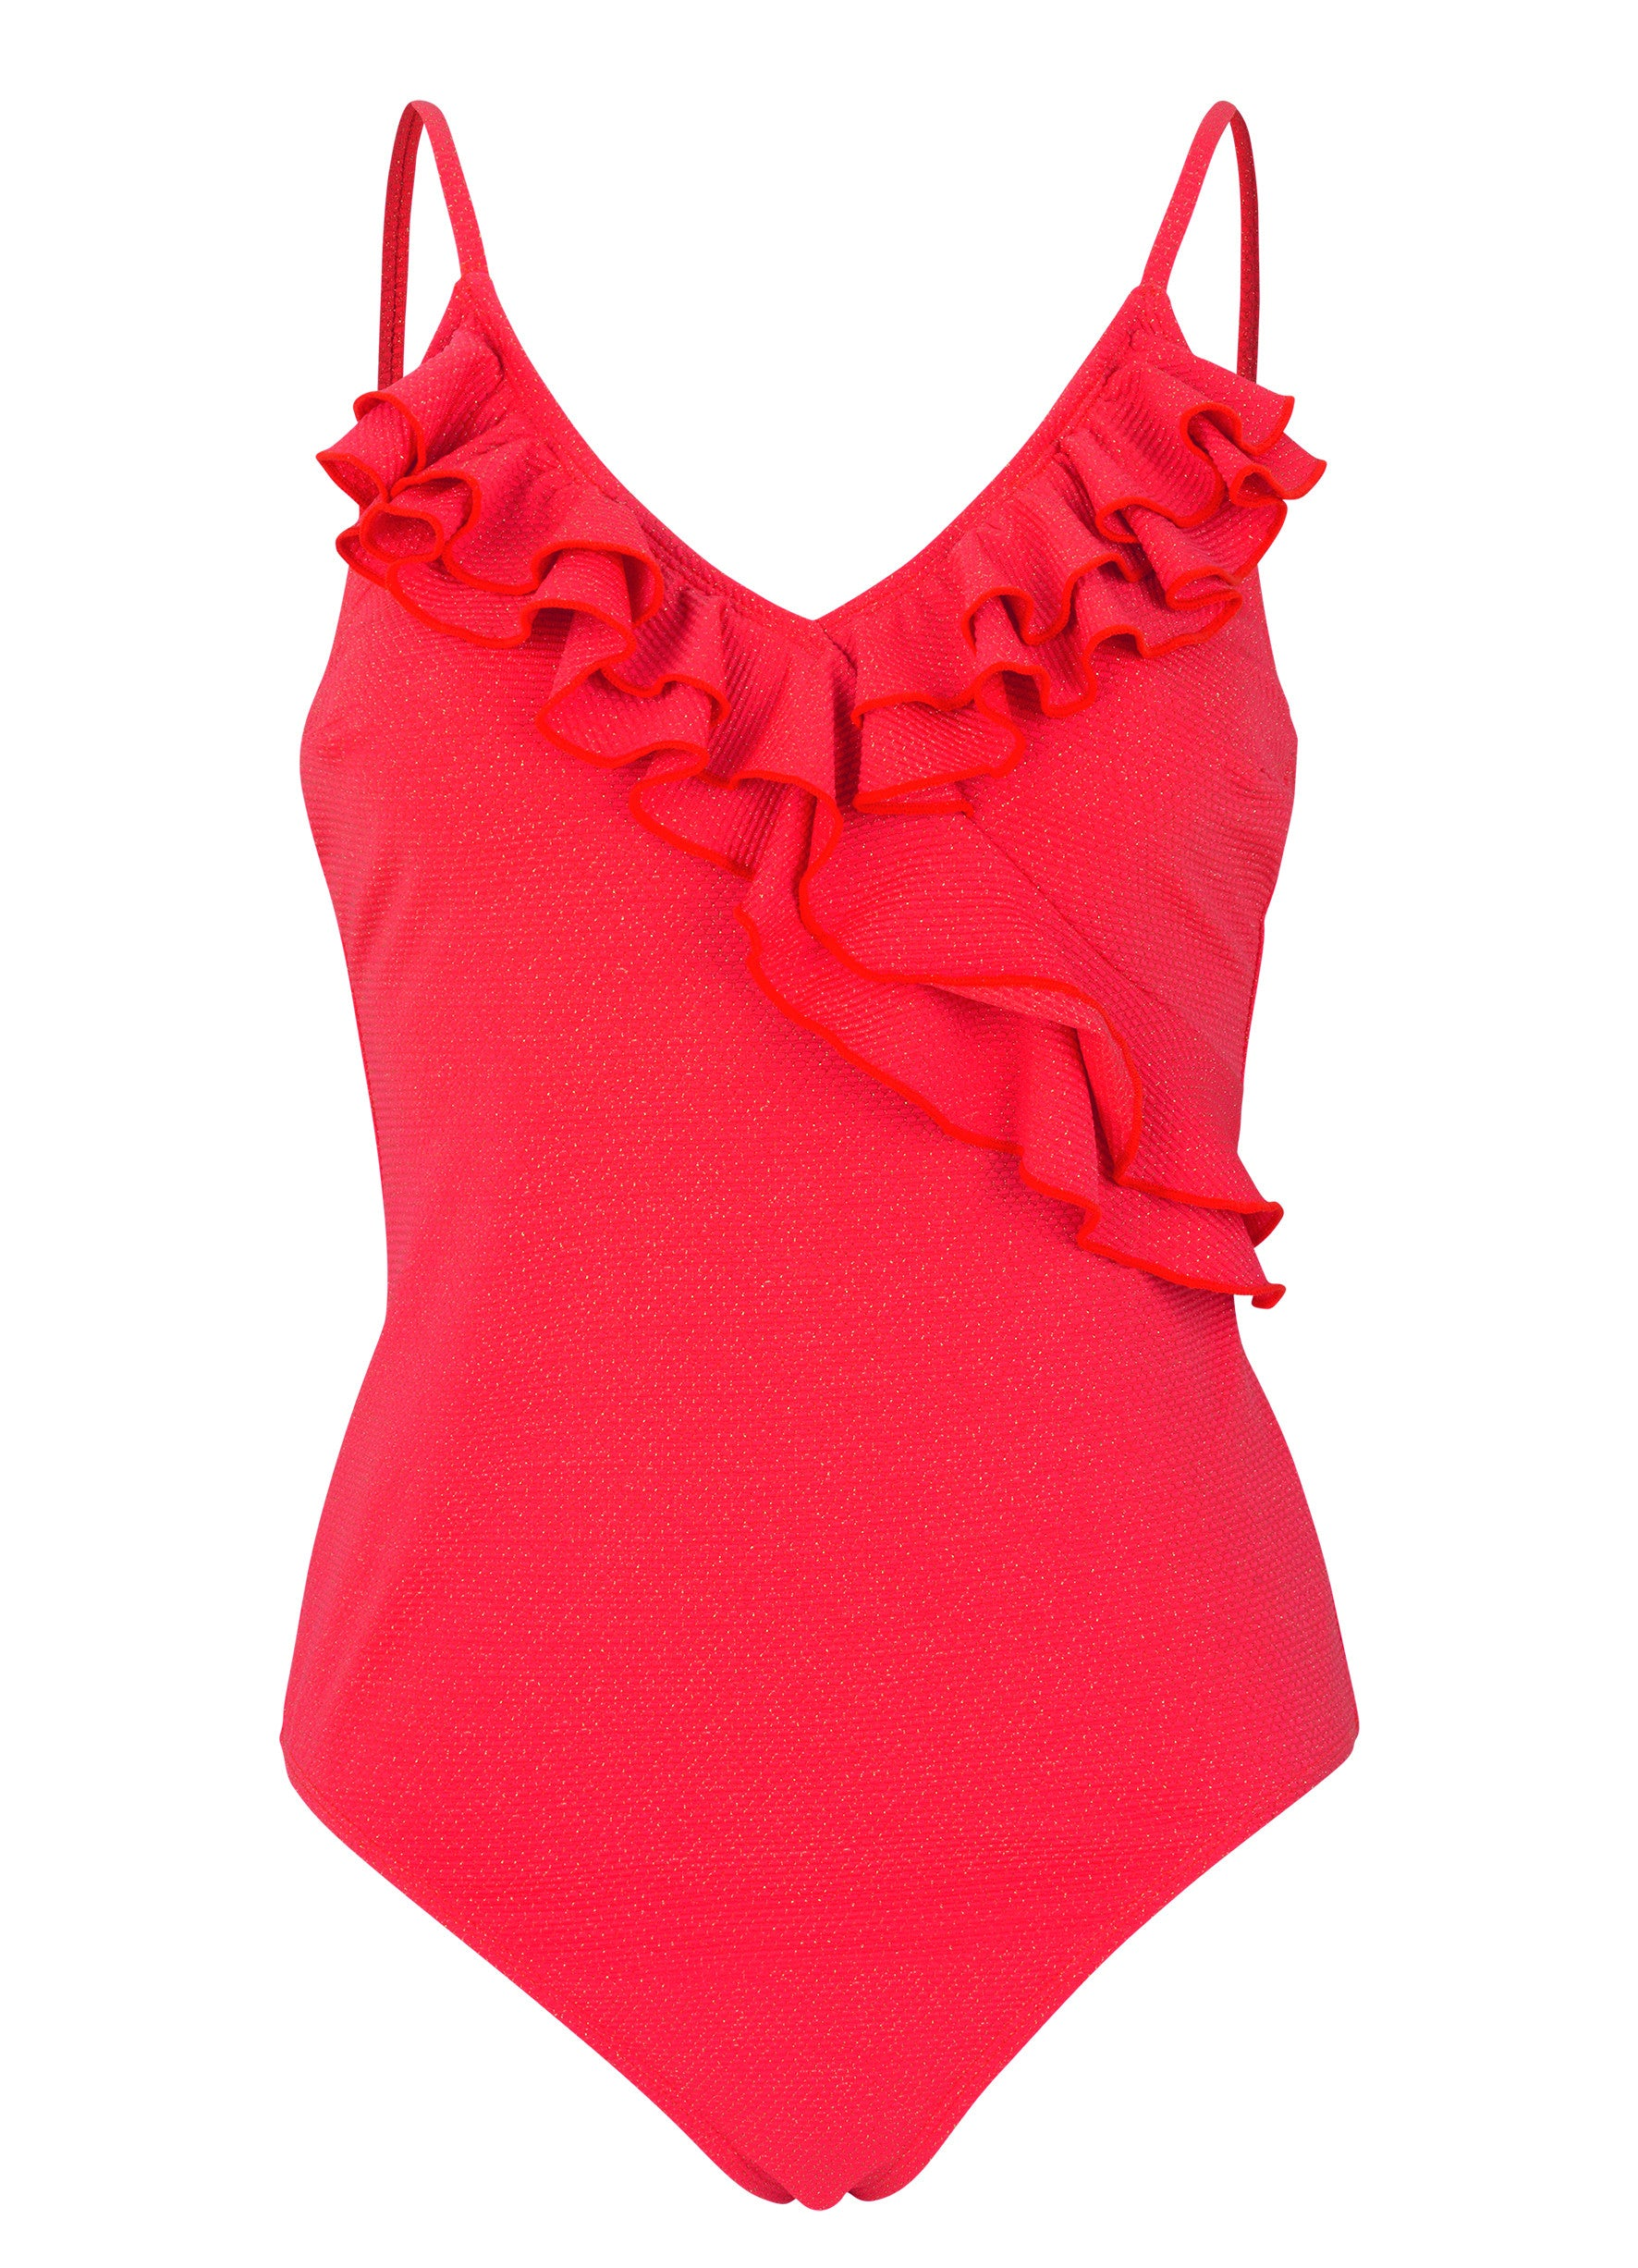 Bela Swimsuit in Red Love